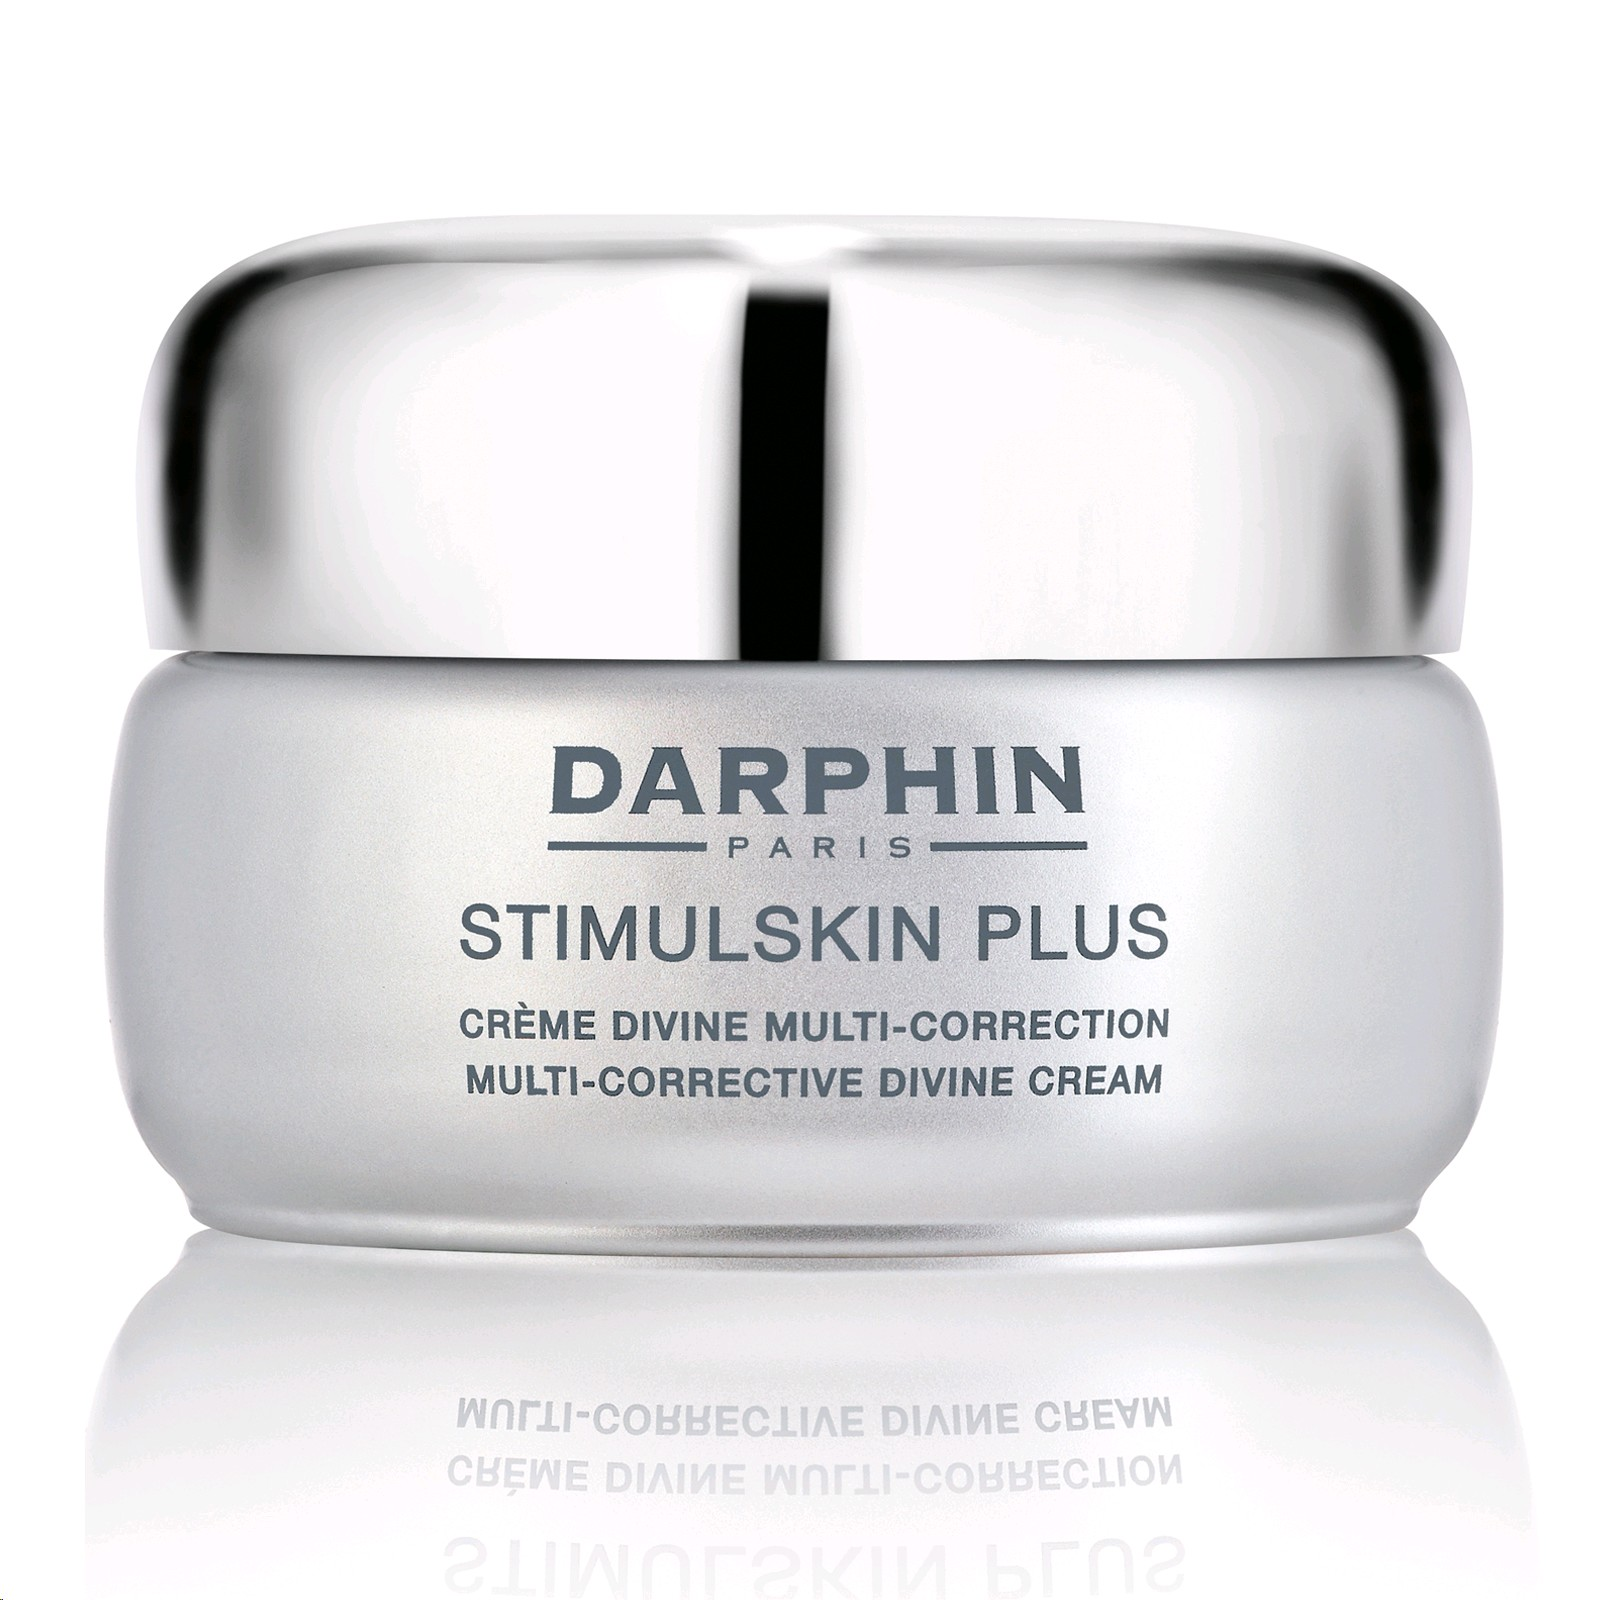 DARPHIN STIMULSKIN PLUS DIVINE PELL NORMAL 50ML